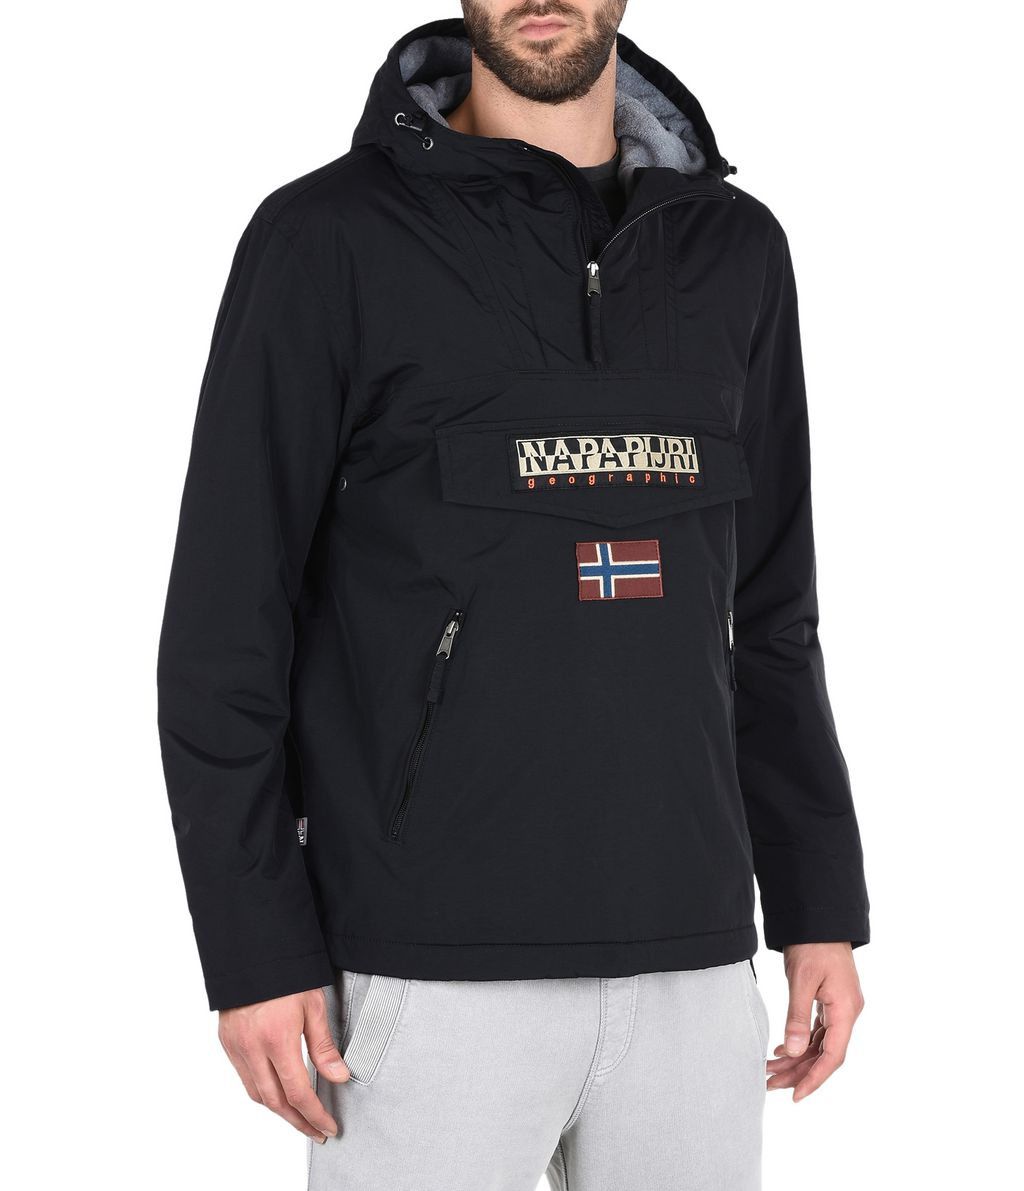 NAPAPIJRI RAINFOREST WINTER POCKETS MAN RAINFOREST,BLACK